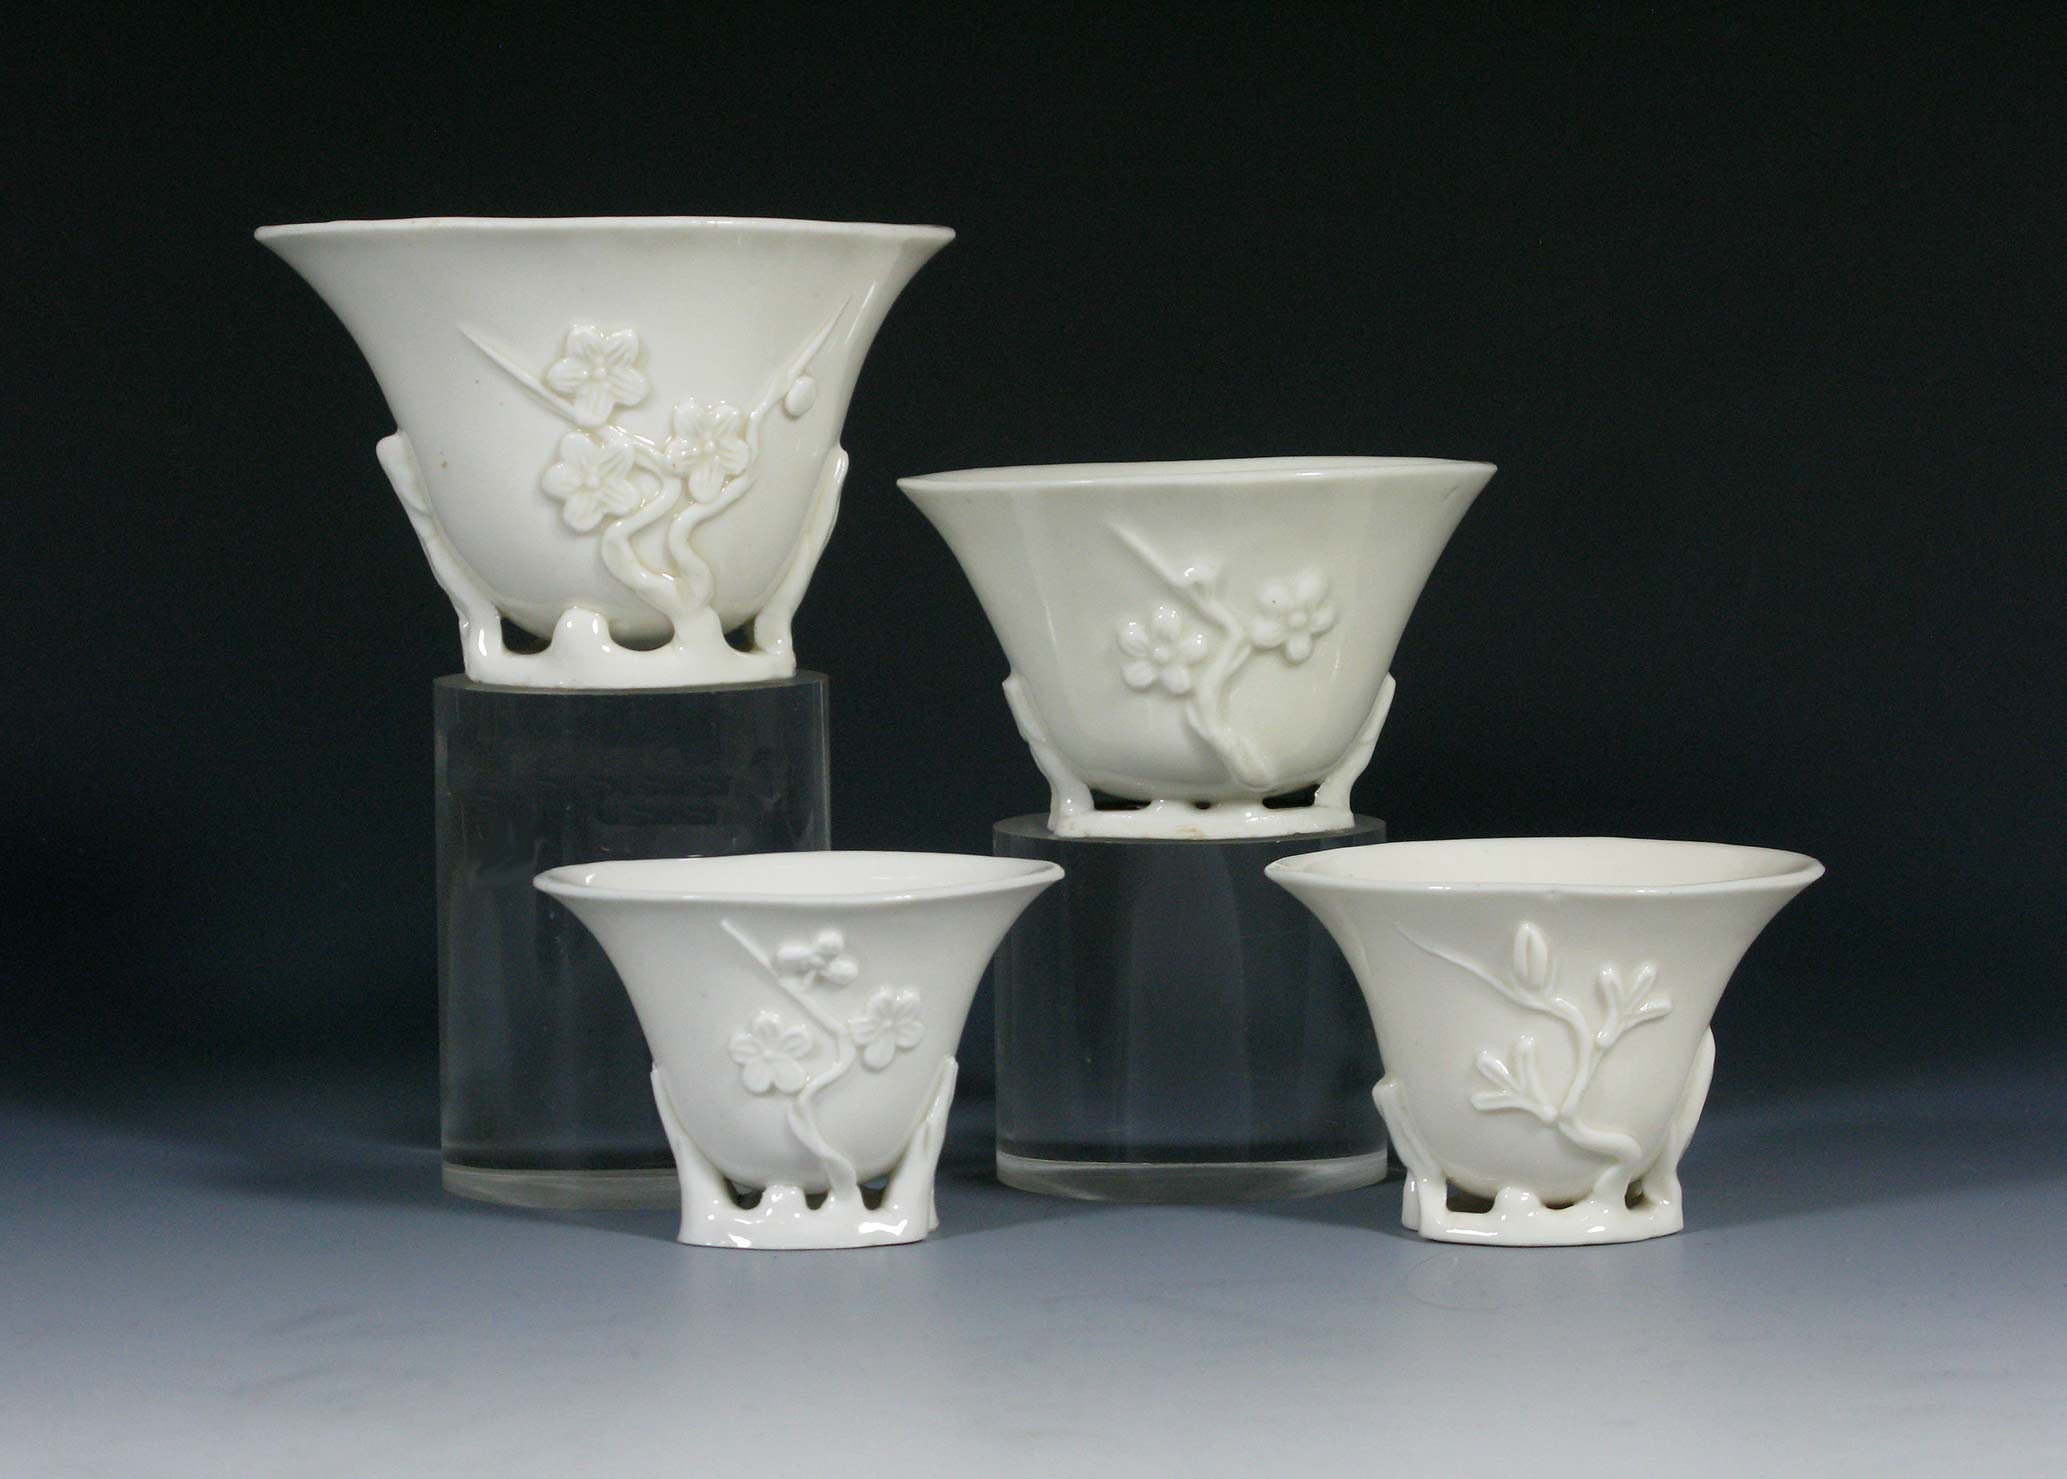 Hall Pottery Vase Of White Porcelain Collection Inside Chinese Dehua Wine Cups